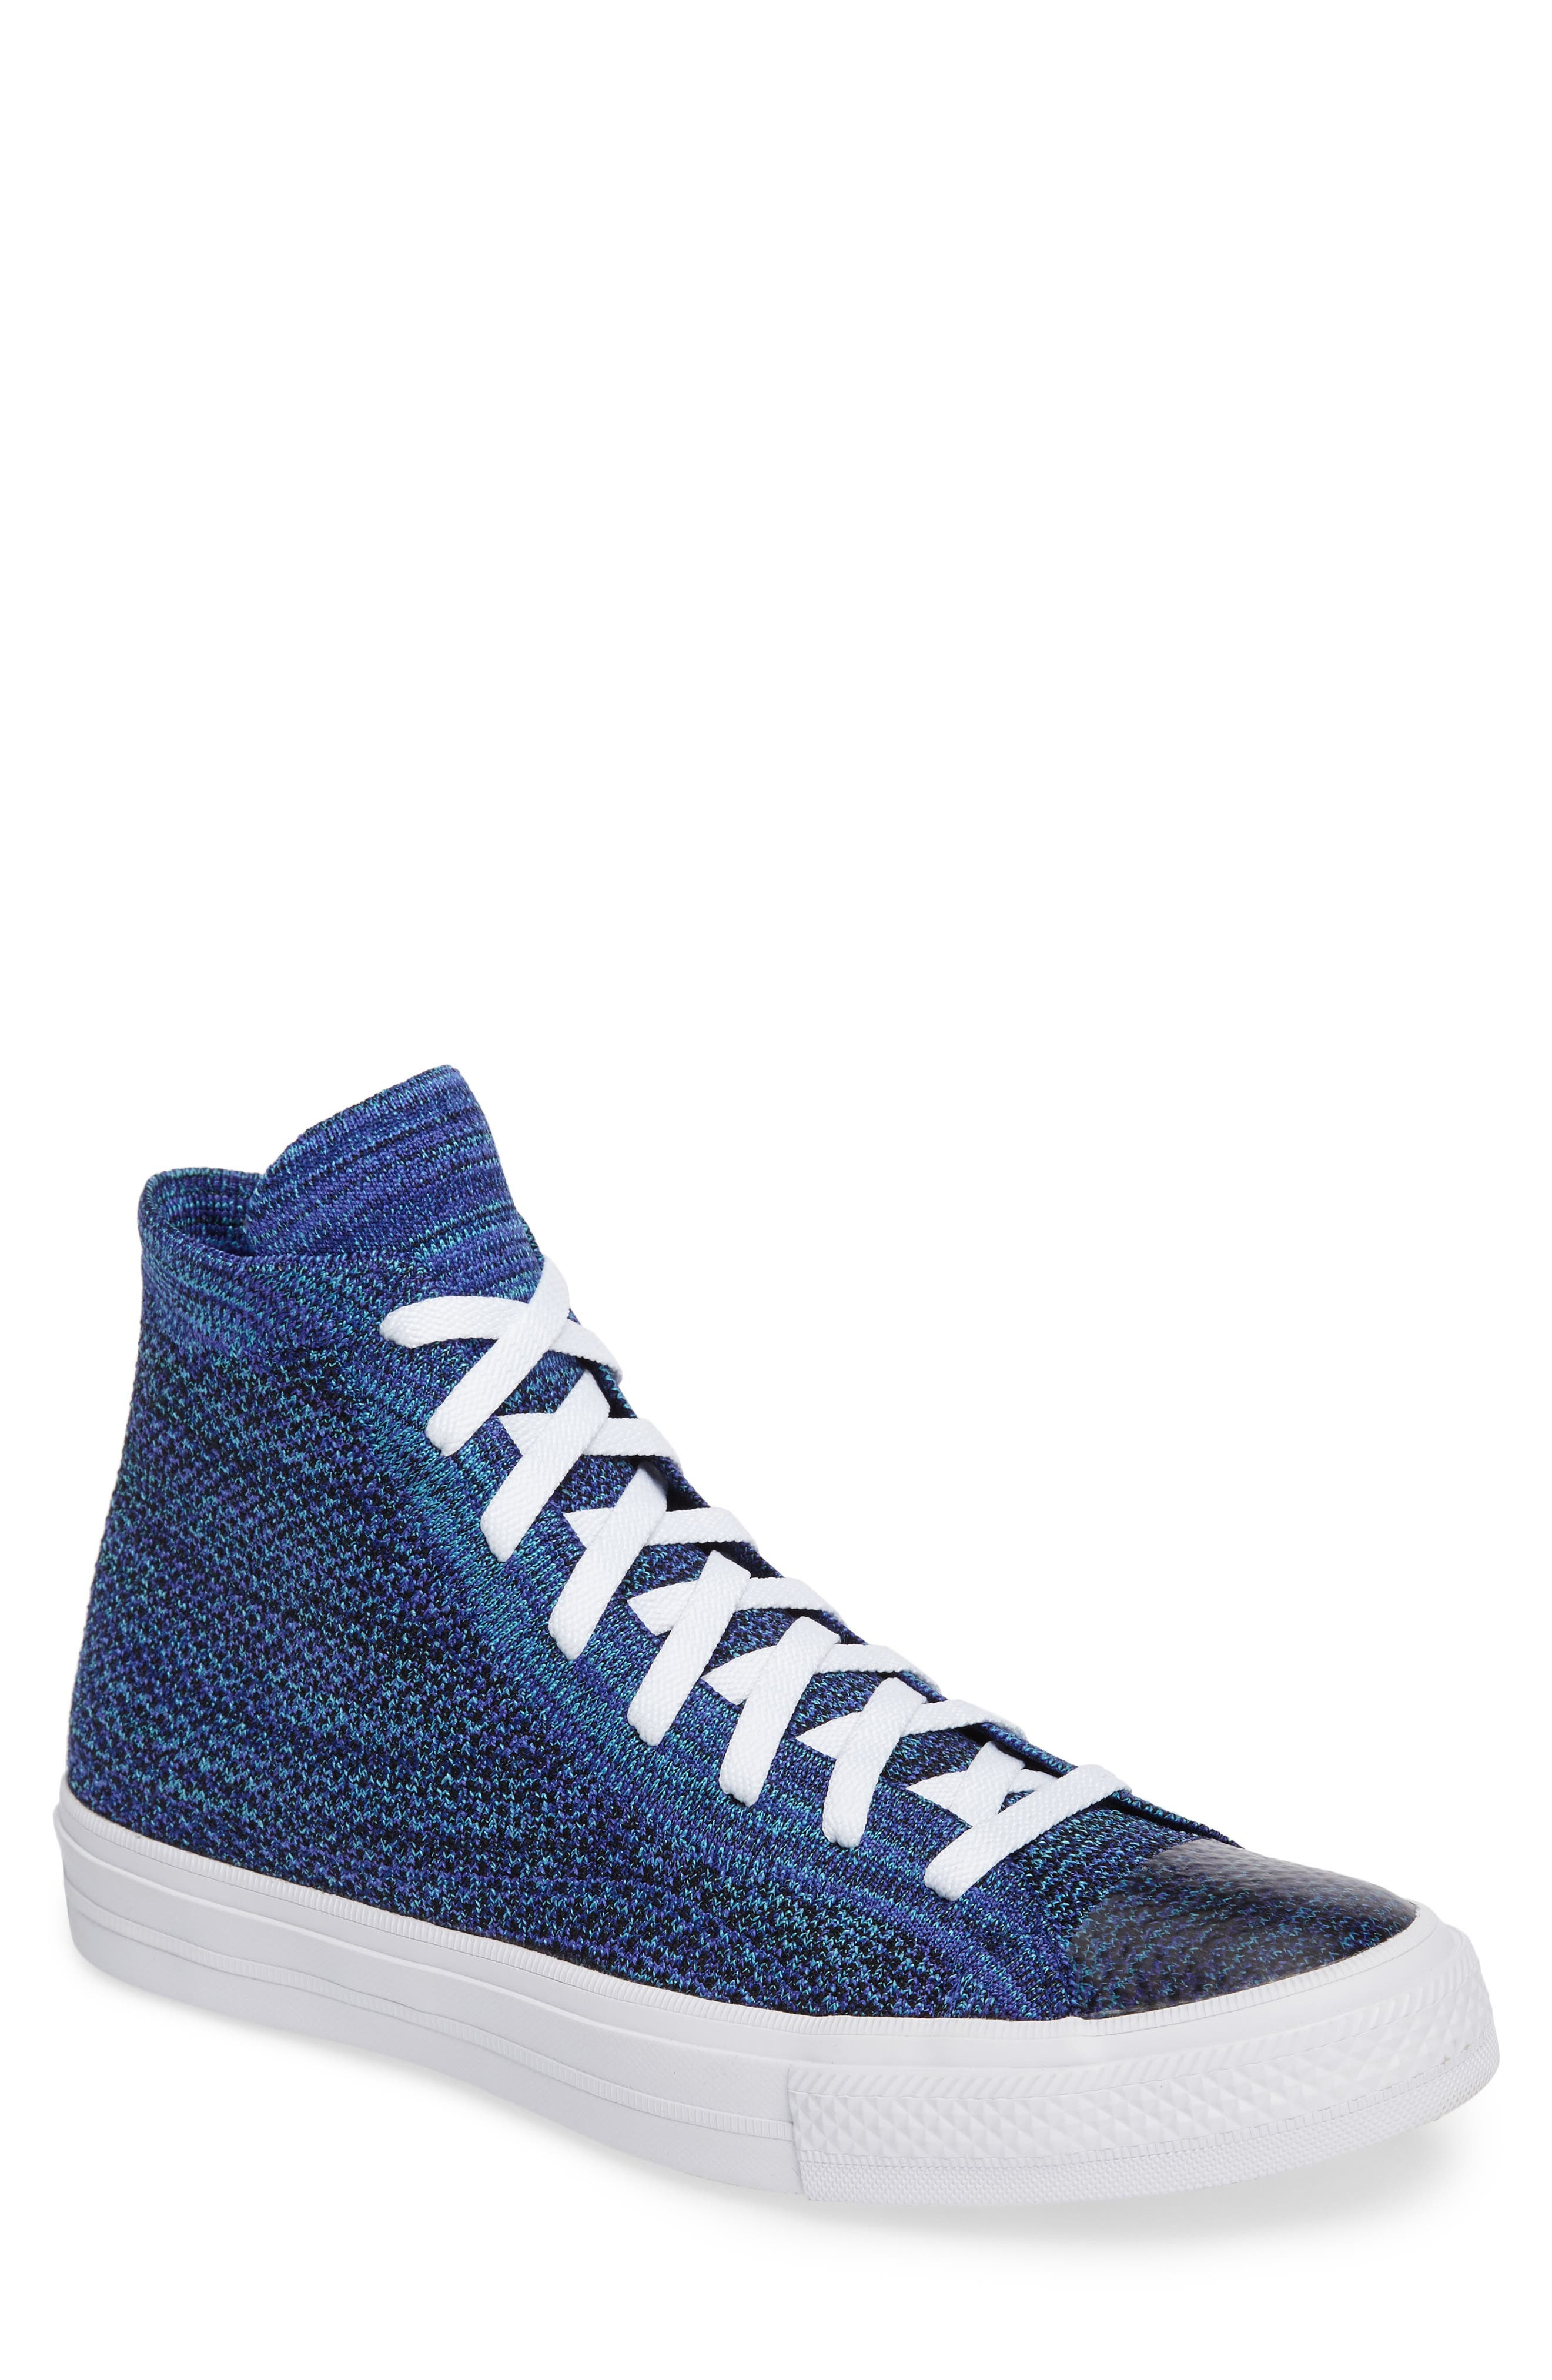 Alternate Image 1 Selected - Converse Chuck Taylor® All Star® Flyknit Hi Sneaker (Men)